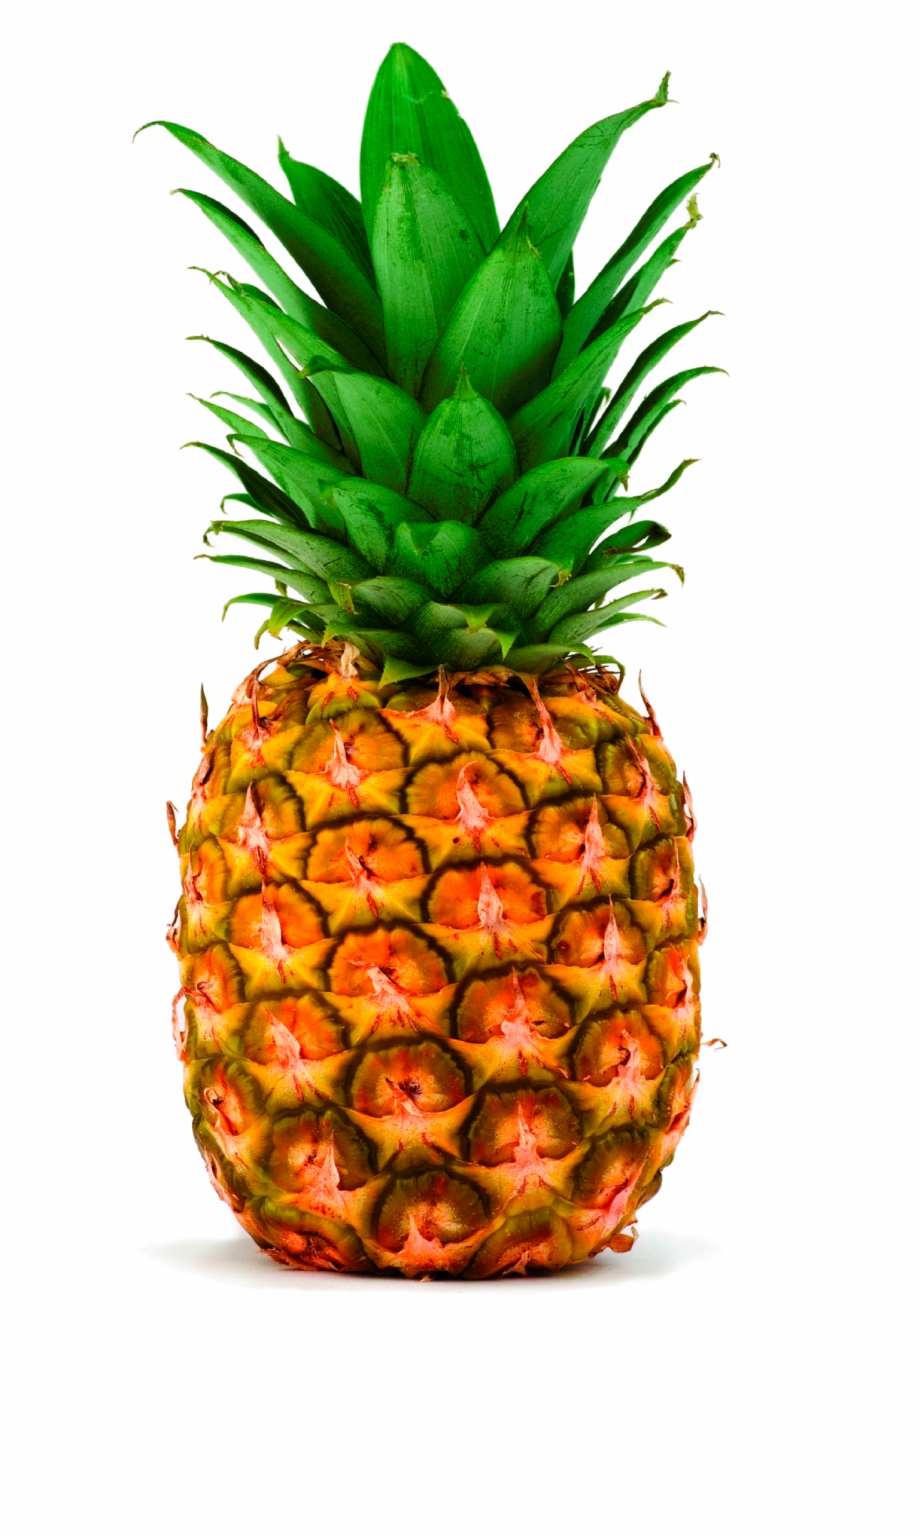 Pineapple Png Transparent Png Download 902453 Vippng All images and logos are crafted with great workmanship. pineapple png transparent png